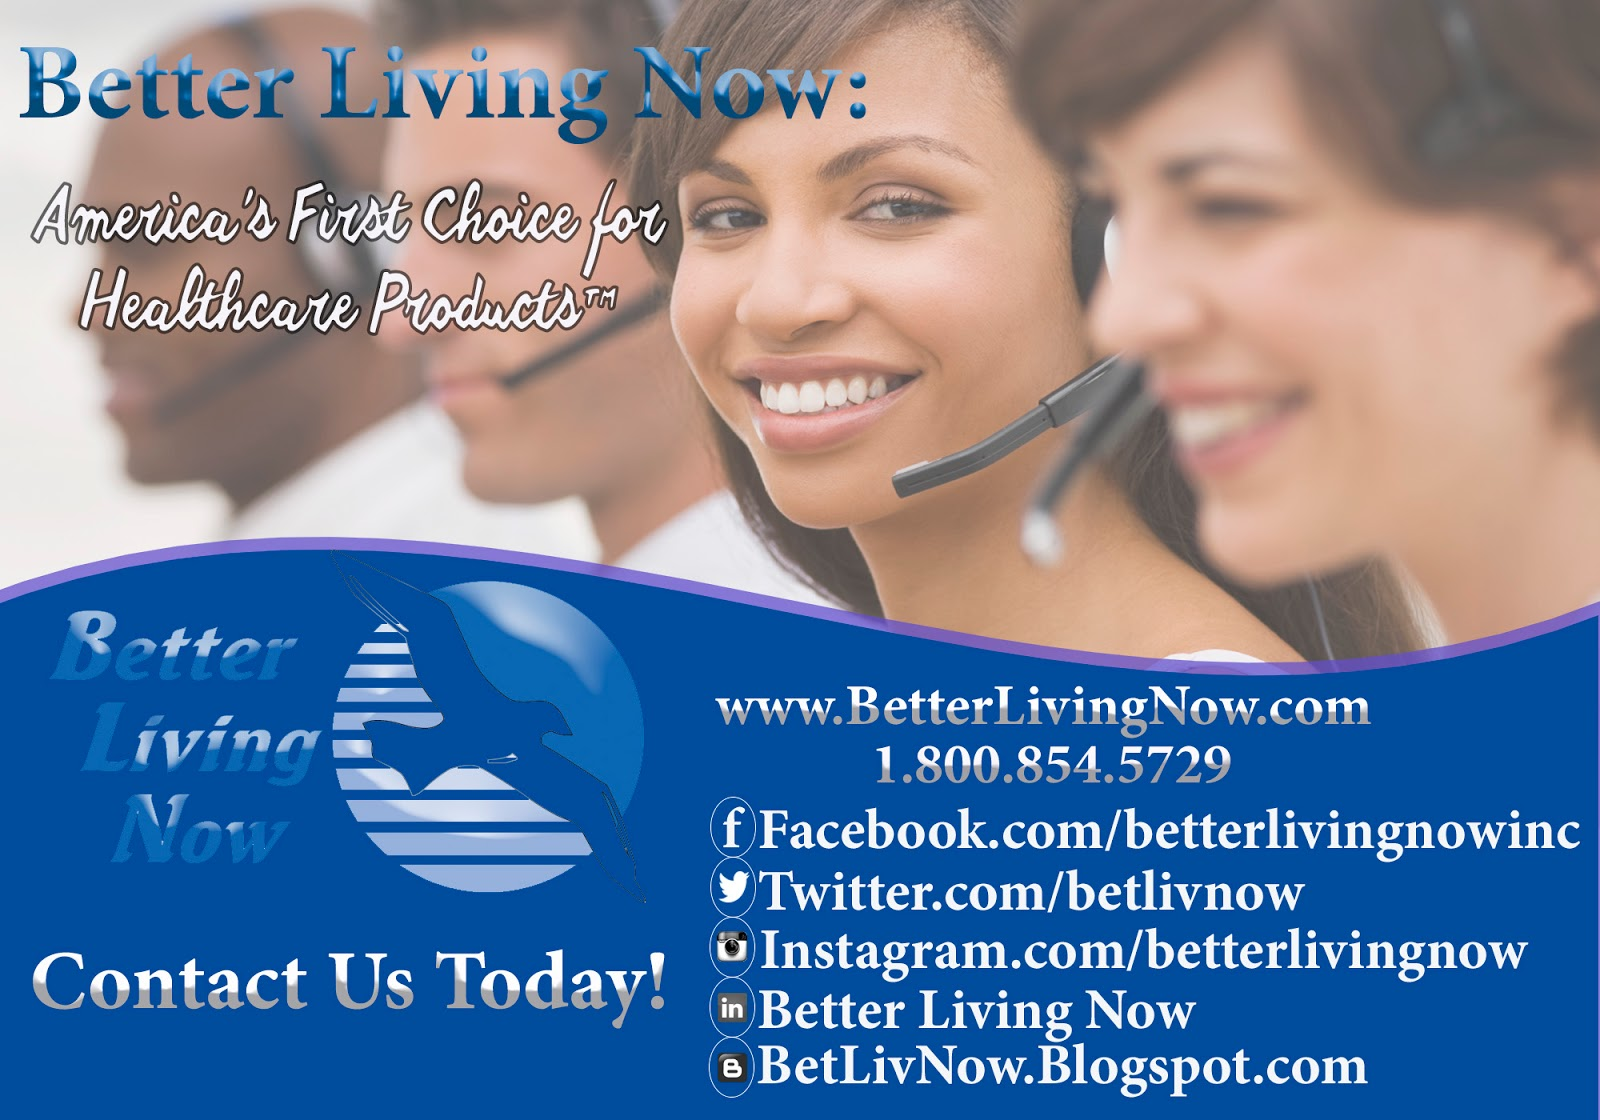 970daade51 We look forward to helping you with your post surgery needs and bringing  you into the BLN Boutique family!